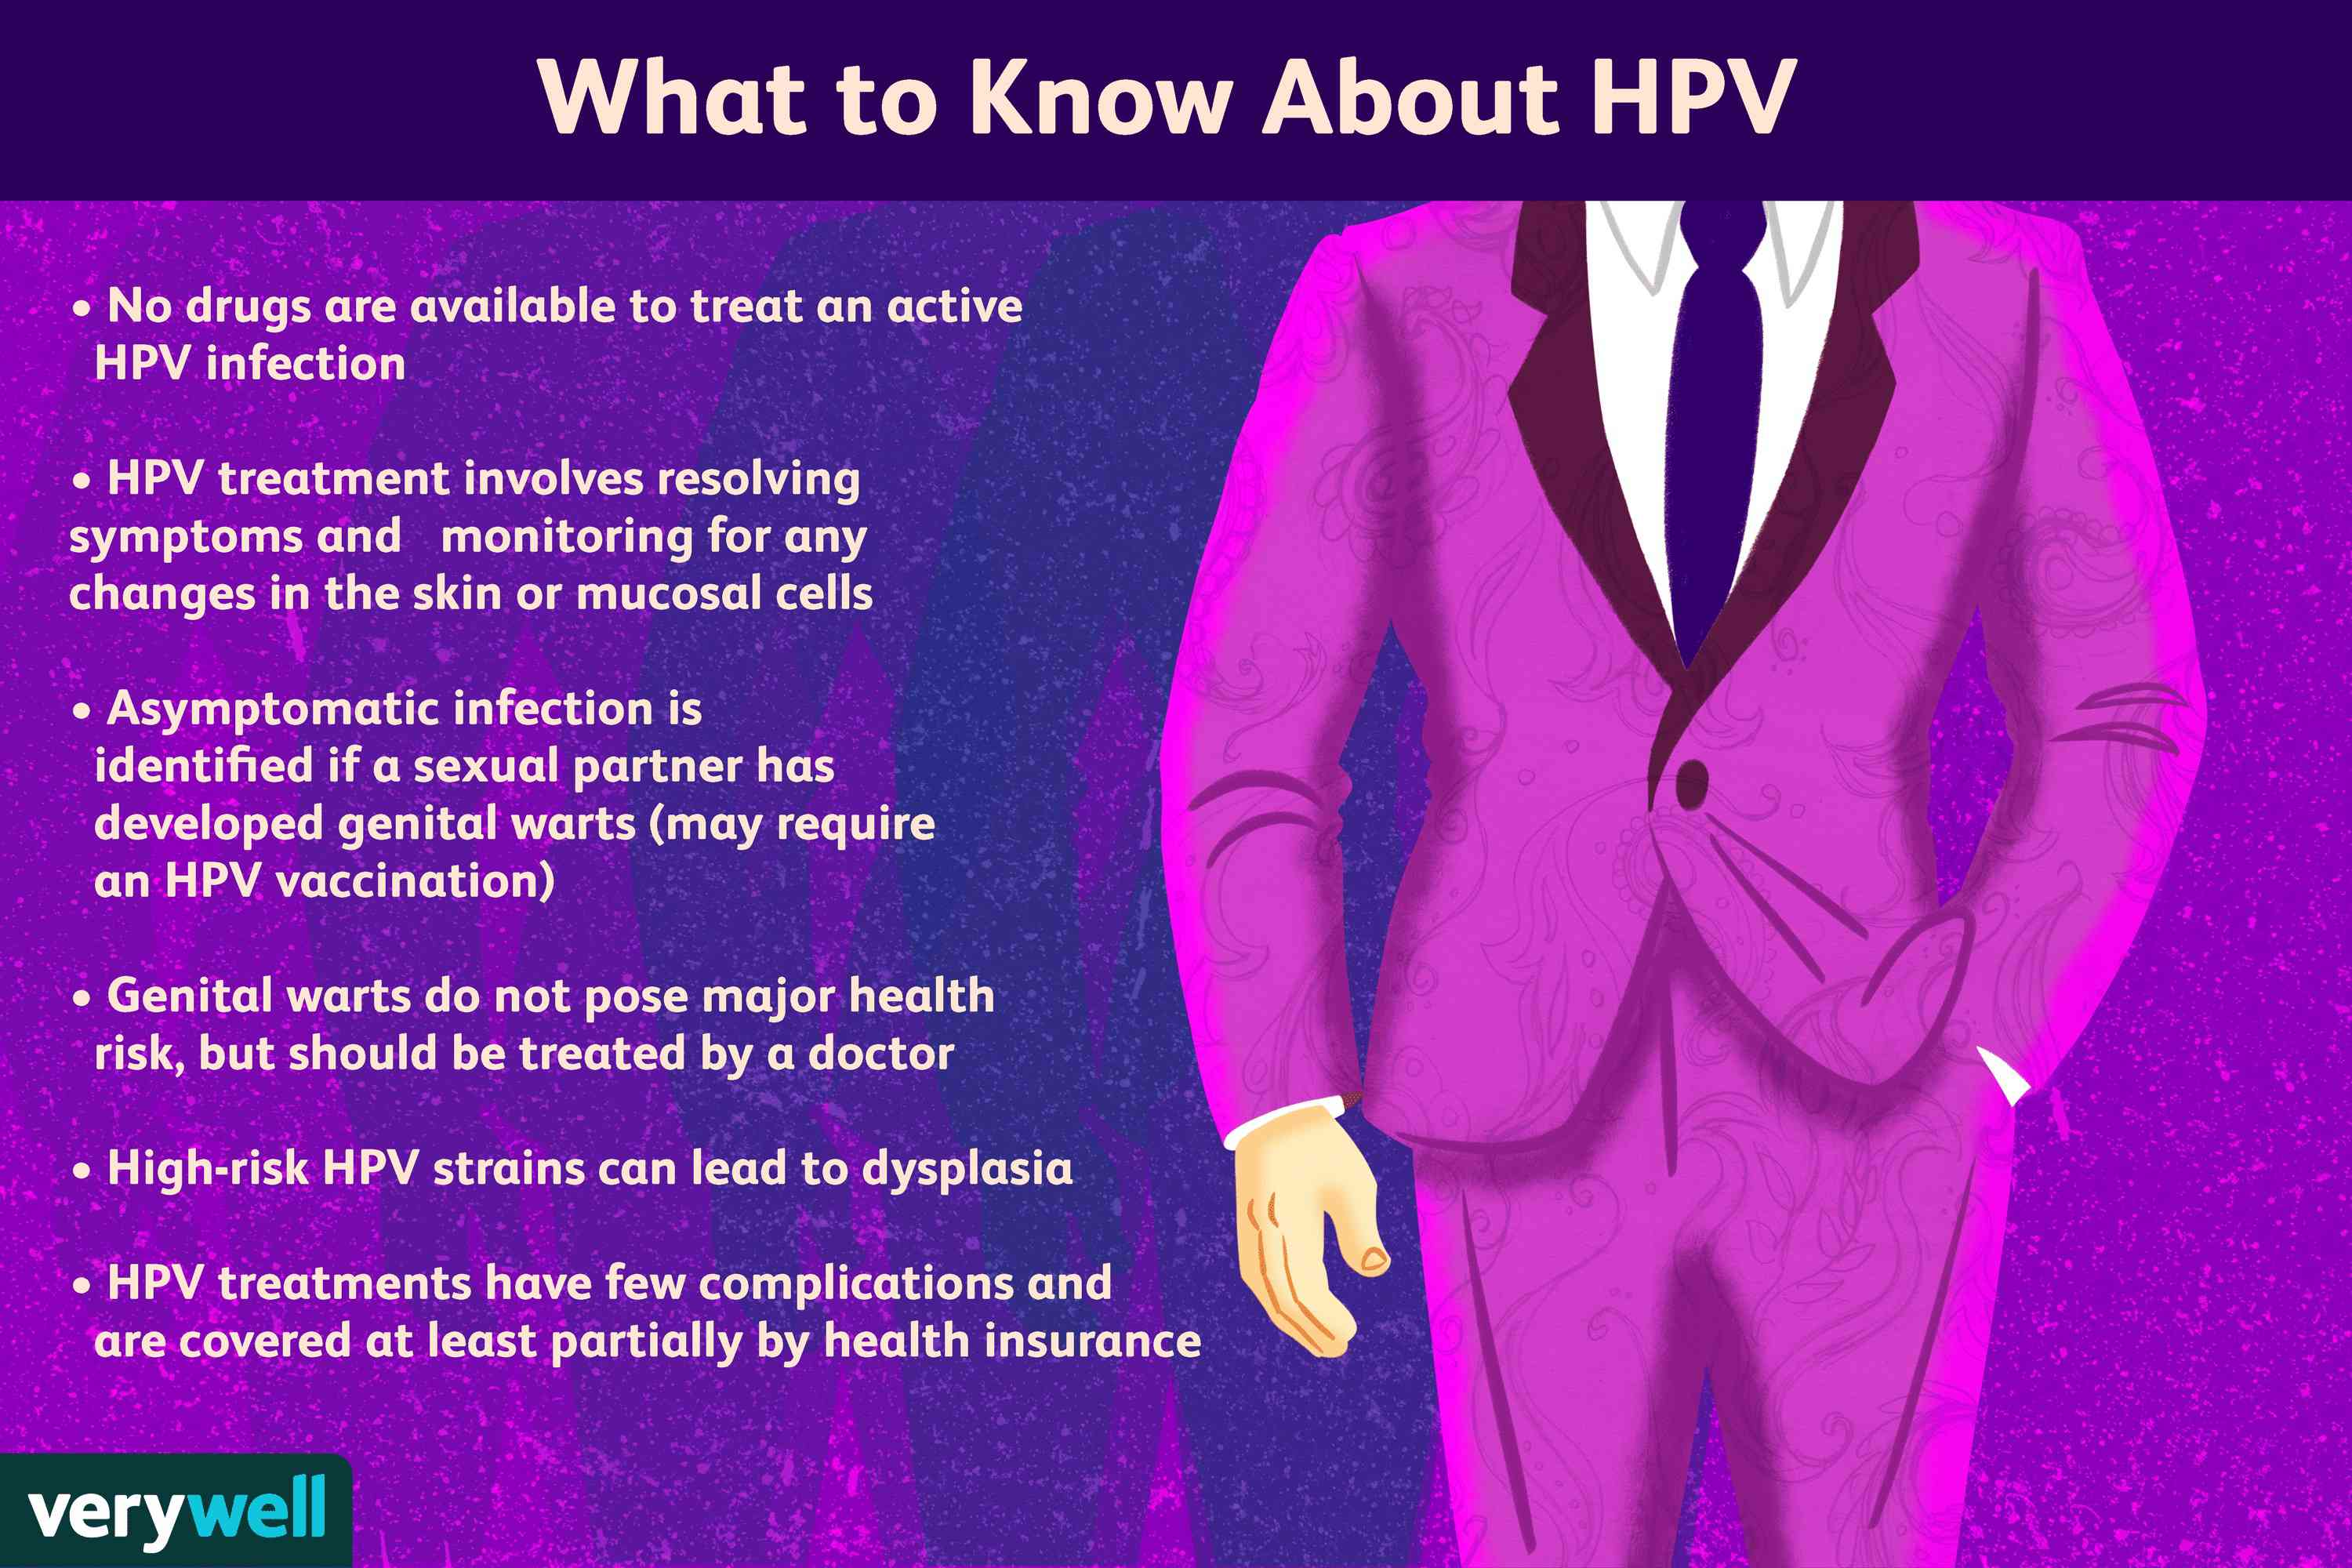 What to Know About HPV